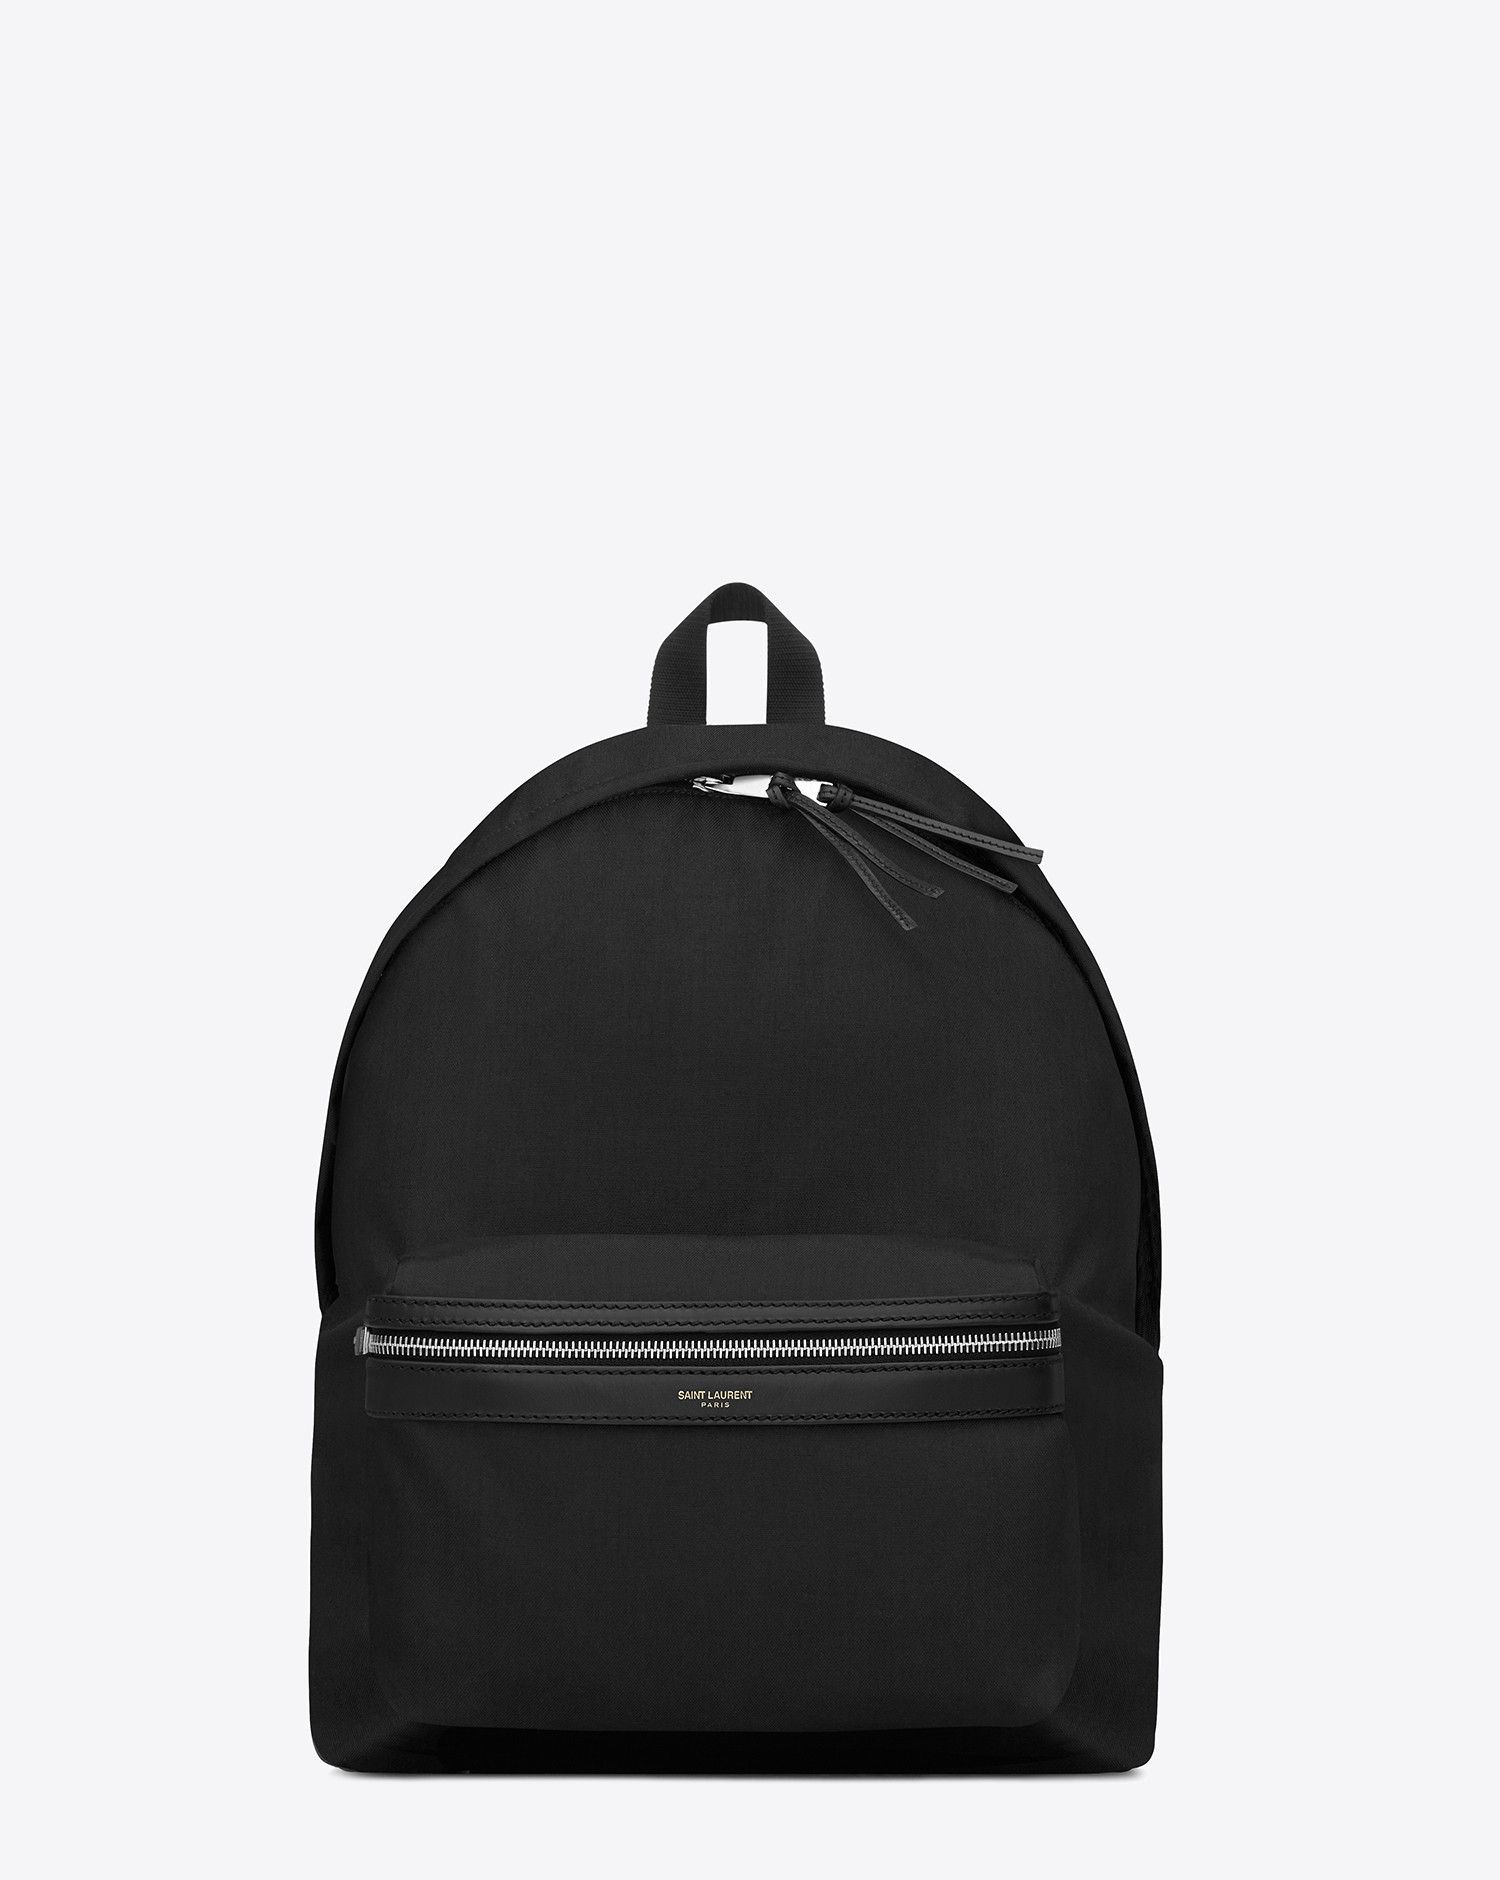 c9631d79 Saint Laurent Classic Hunting Backpack In Black Nylon Canvas And Leather |  YSL.com